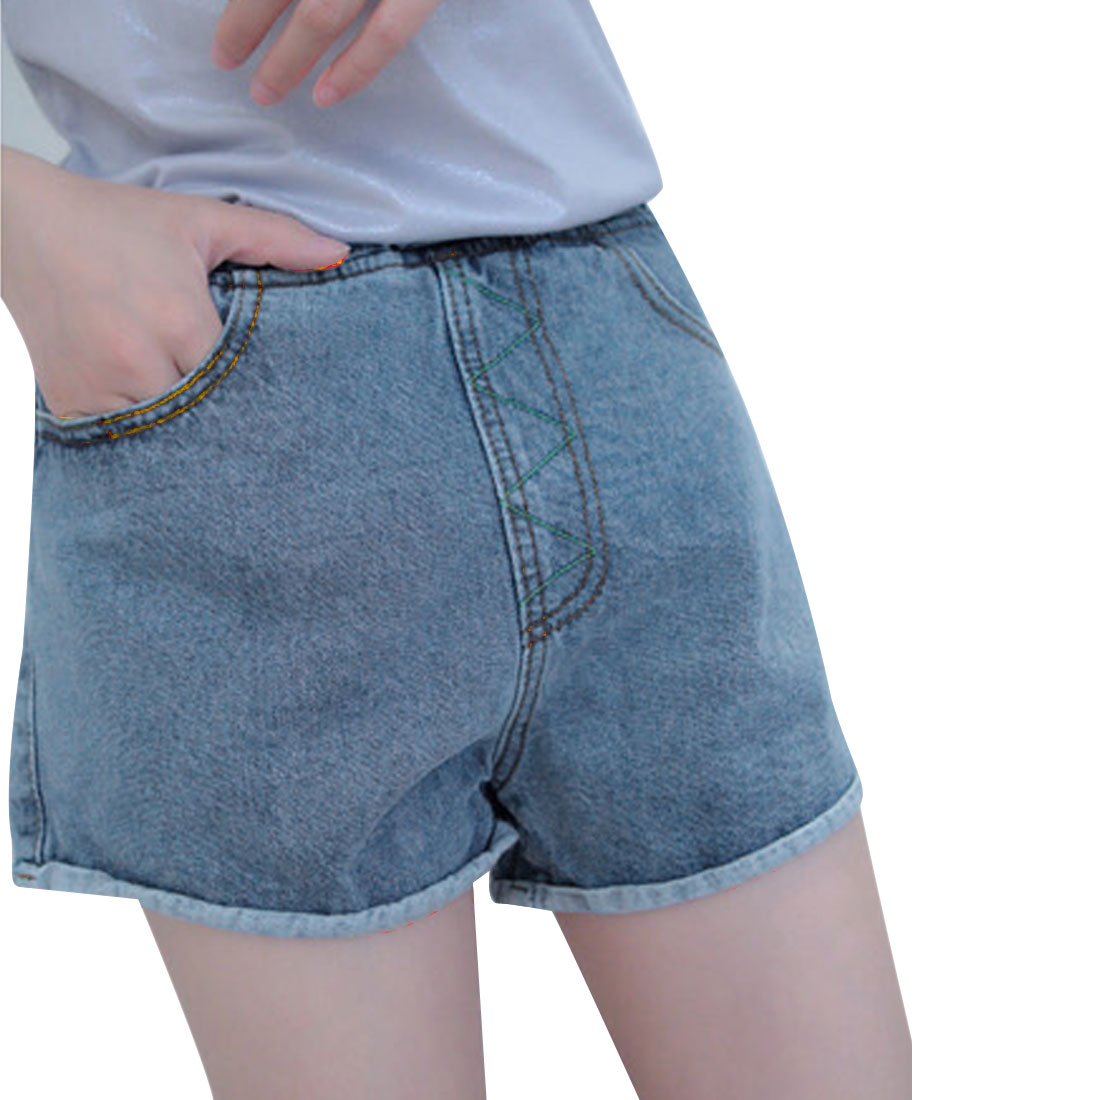 Lady Stylish Slim Fit Stretchy Waist Blue Demin Shorts M